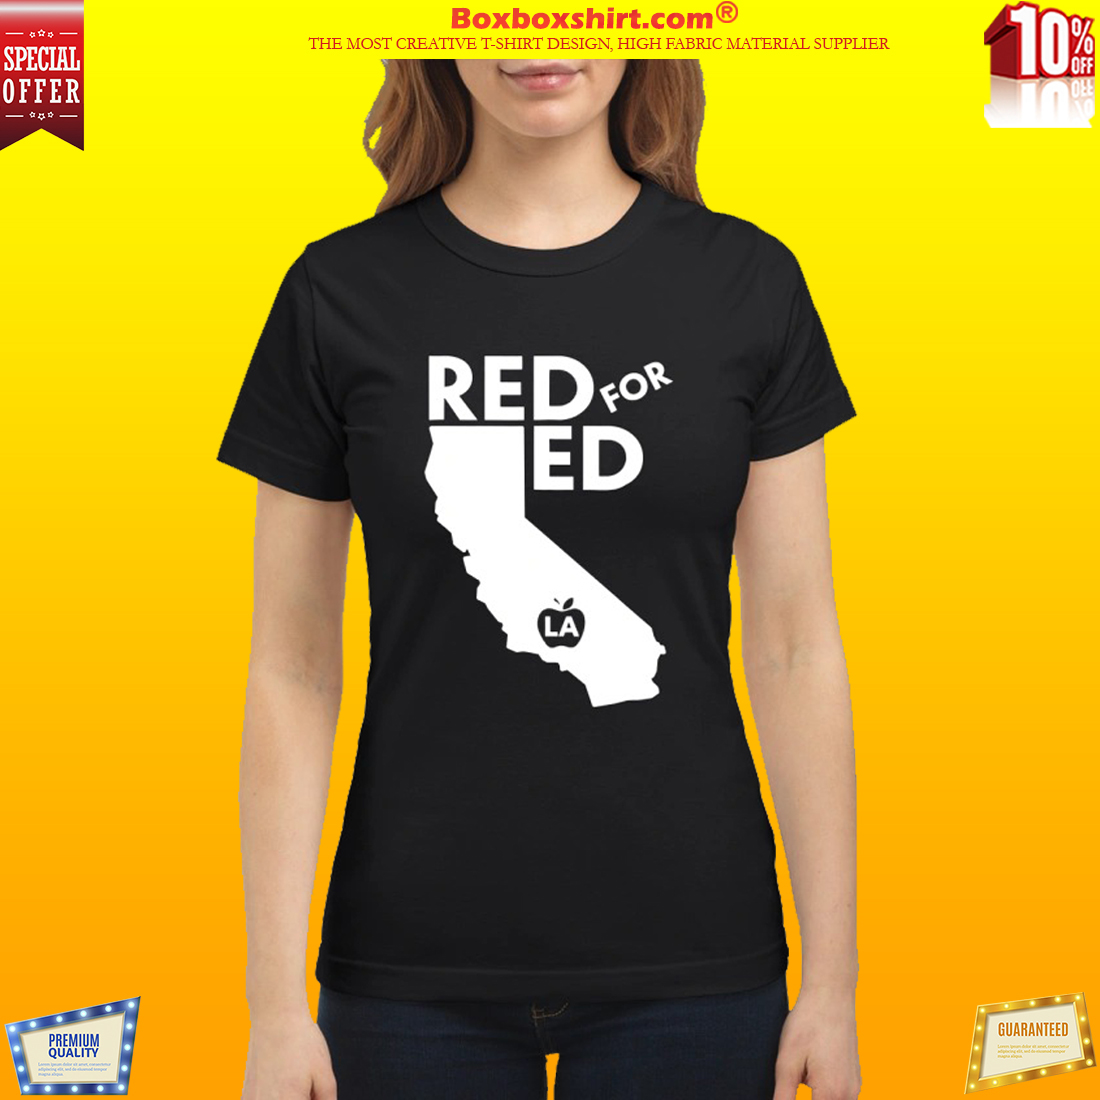 Red for ed California classic shirt